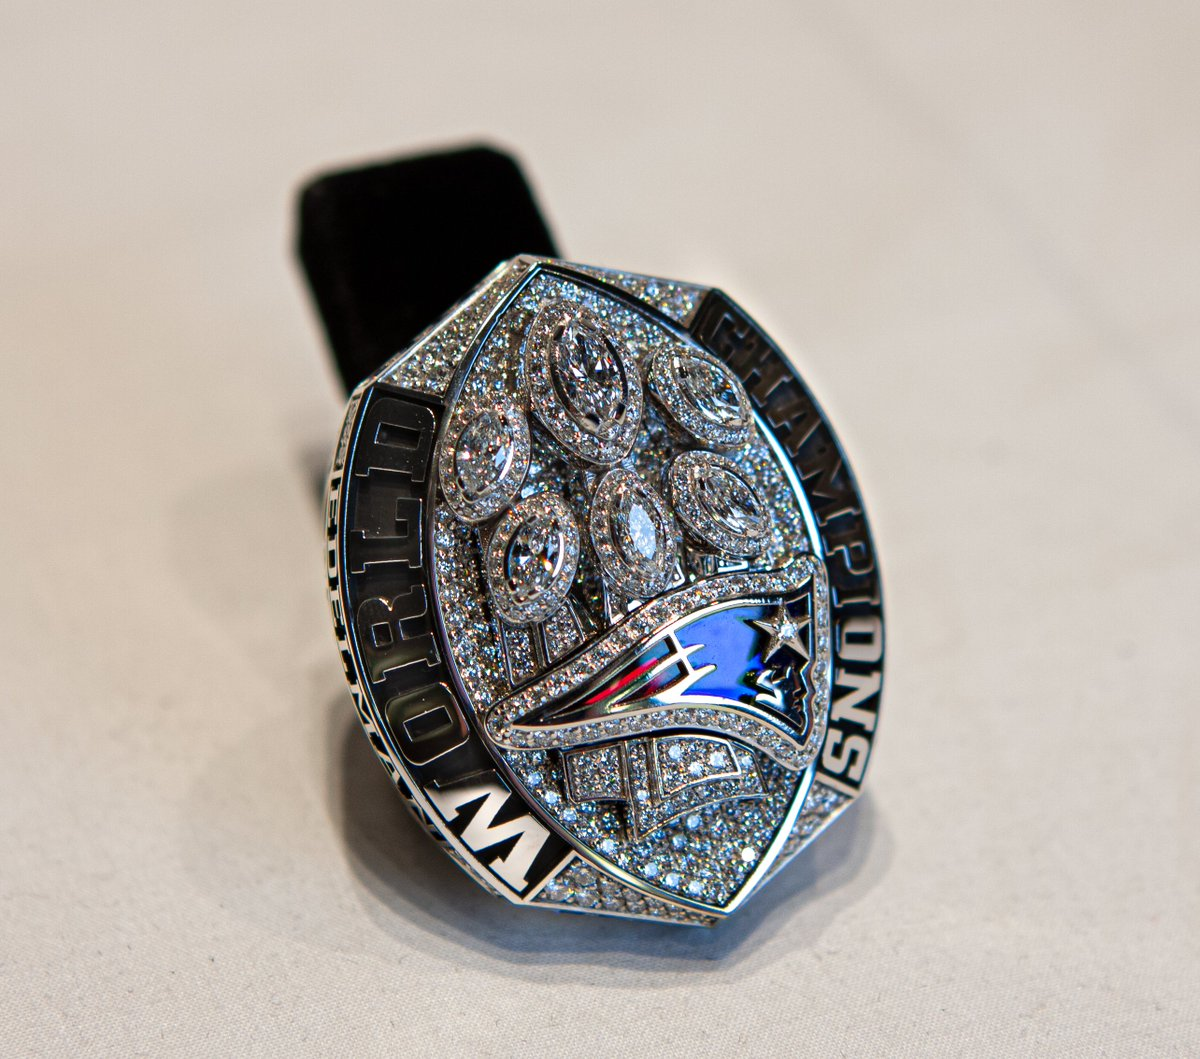 A closer look at the @Patriots #SuperBowl53 Championship Ring! Now on display at the #PFHOF for visitors to see in our Super Bowl Gallery.<br>http://pic.twitter.com/SAPU557qnC